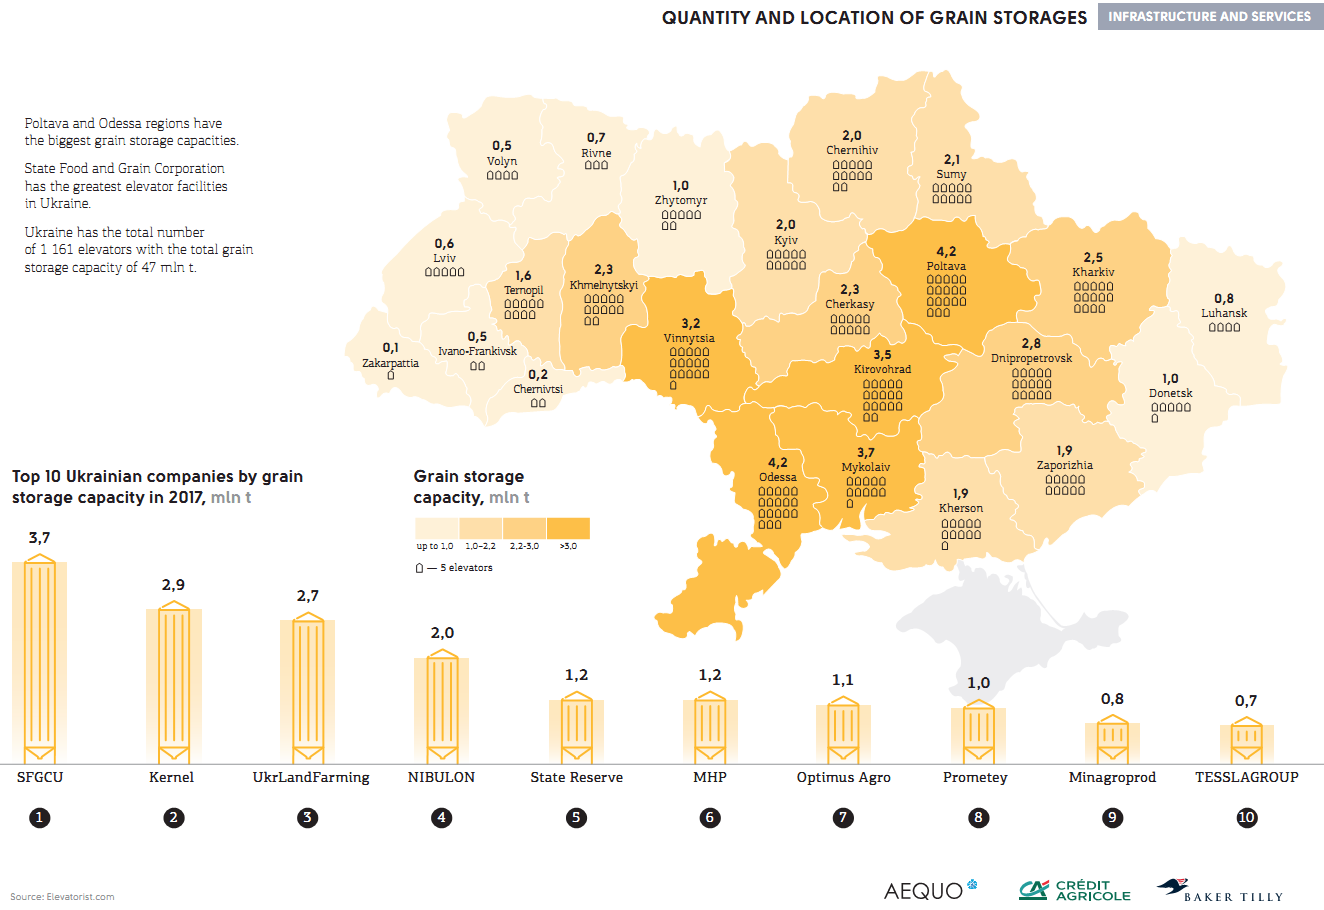 Grain storage capacities in Ukraine in 2017/18 (click for full resolution)